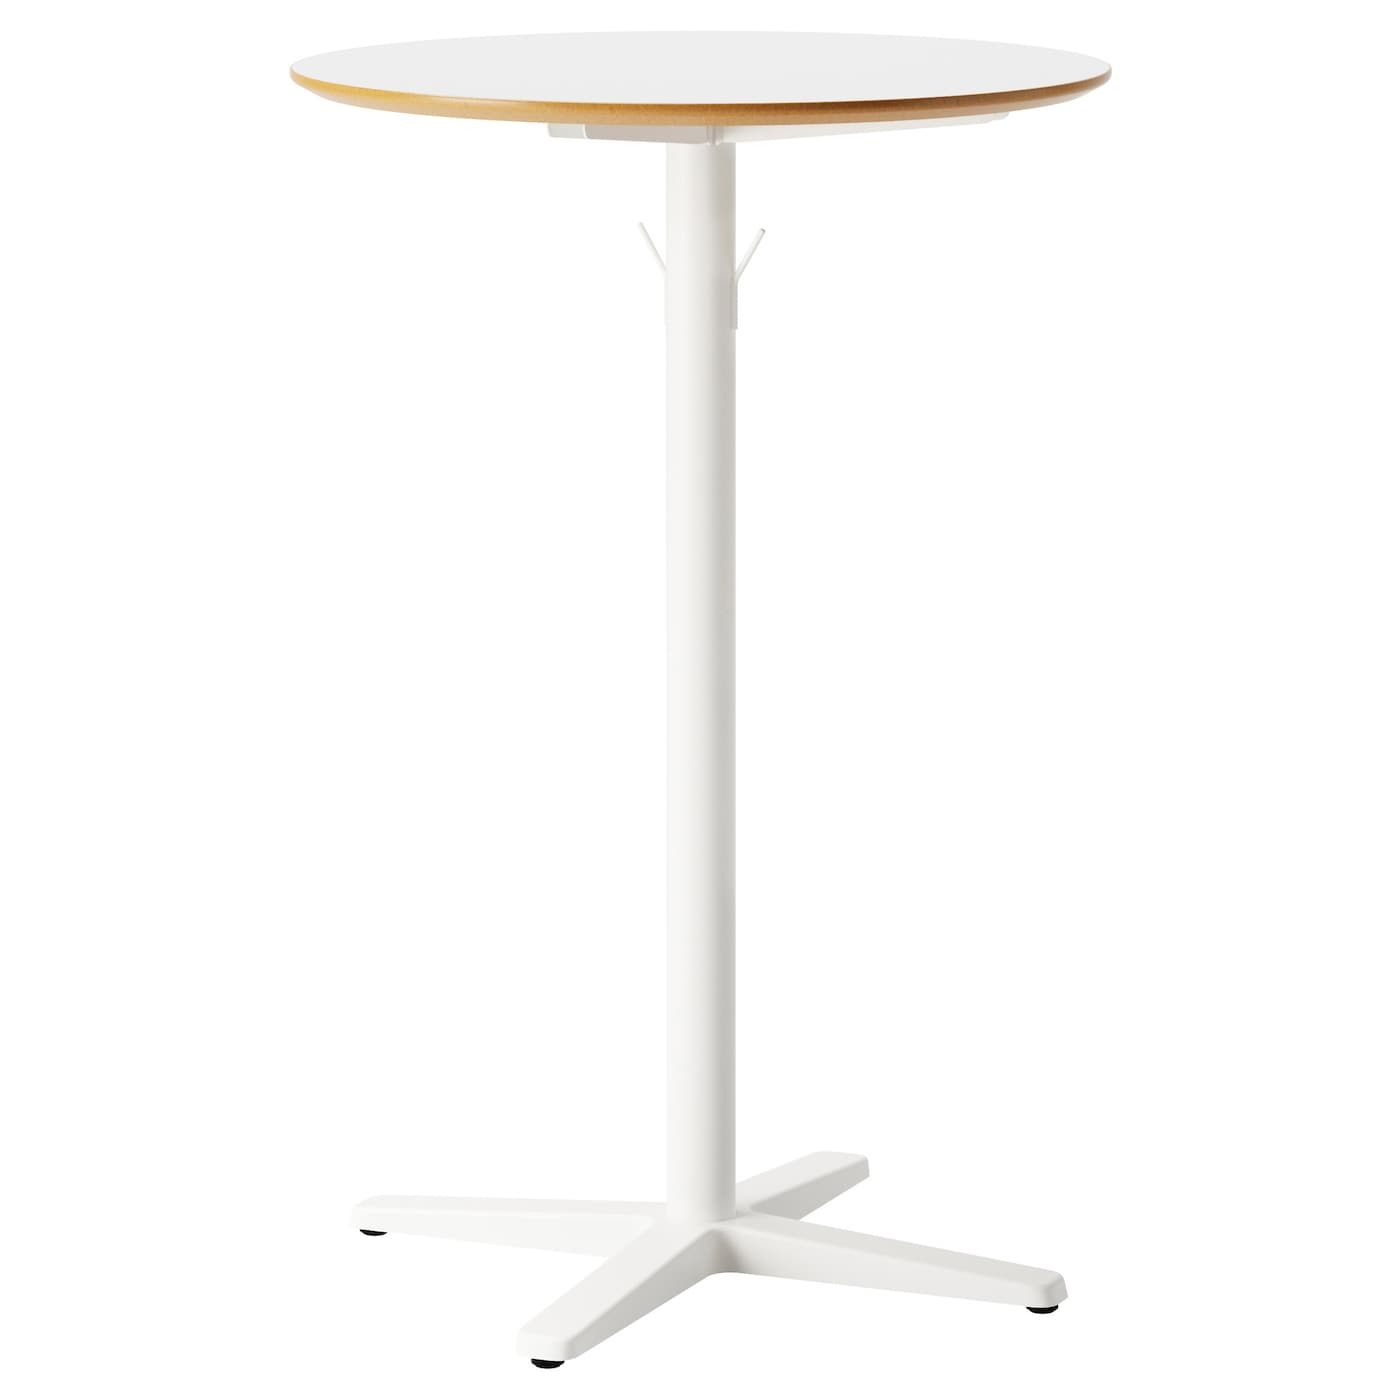 billsta bar table white white cm ikea table en teck ikea. Black Bedroom Furniture Sets. Home Design Ideas